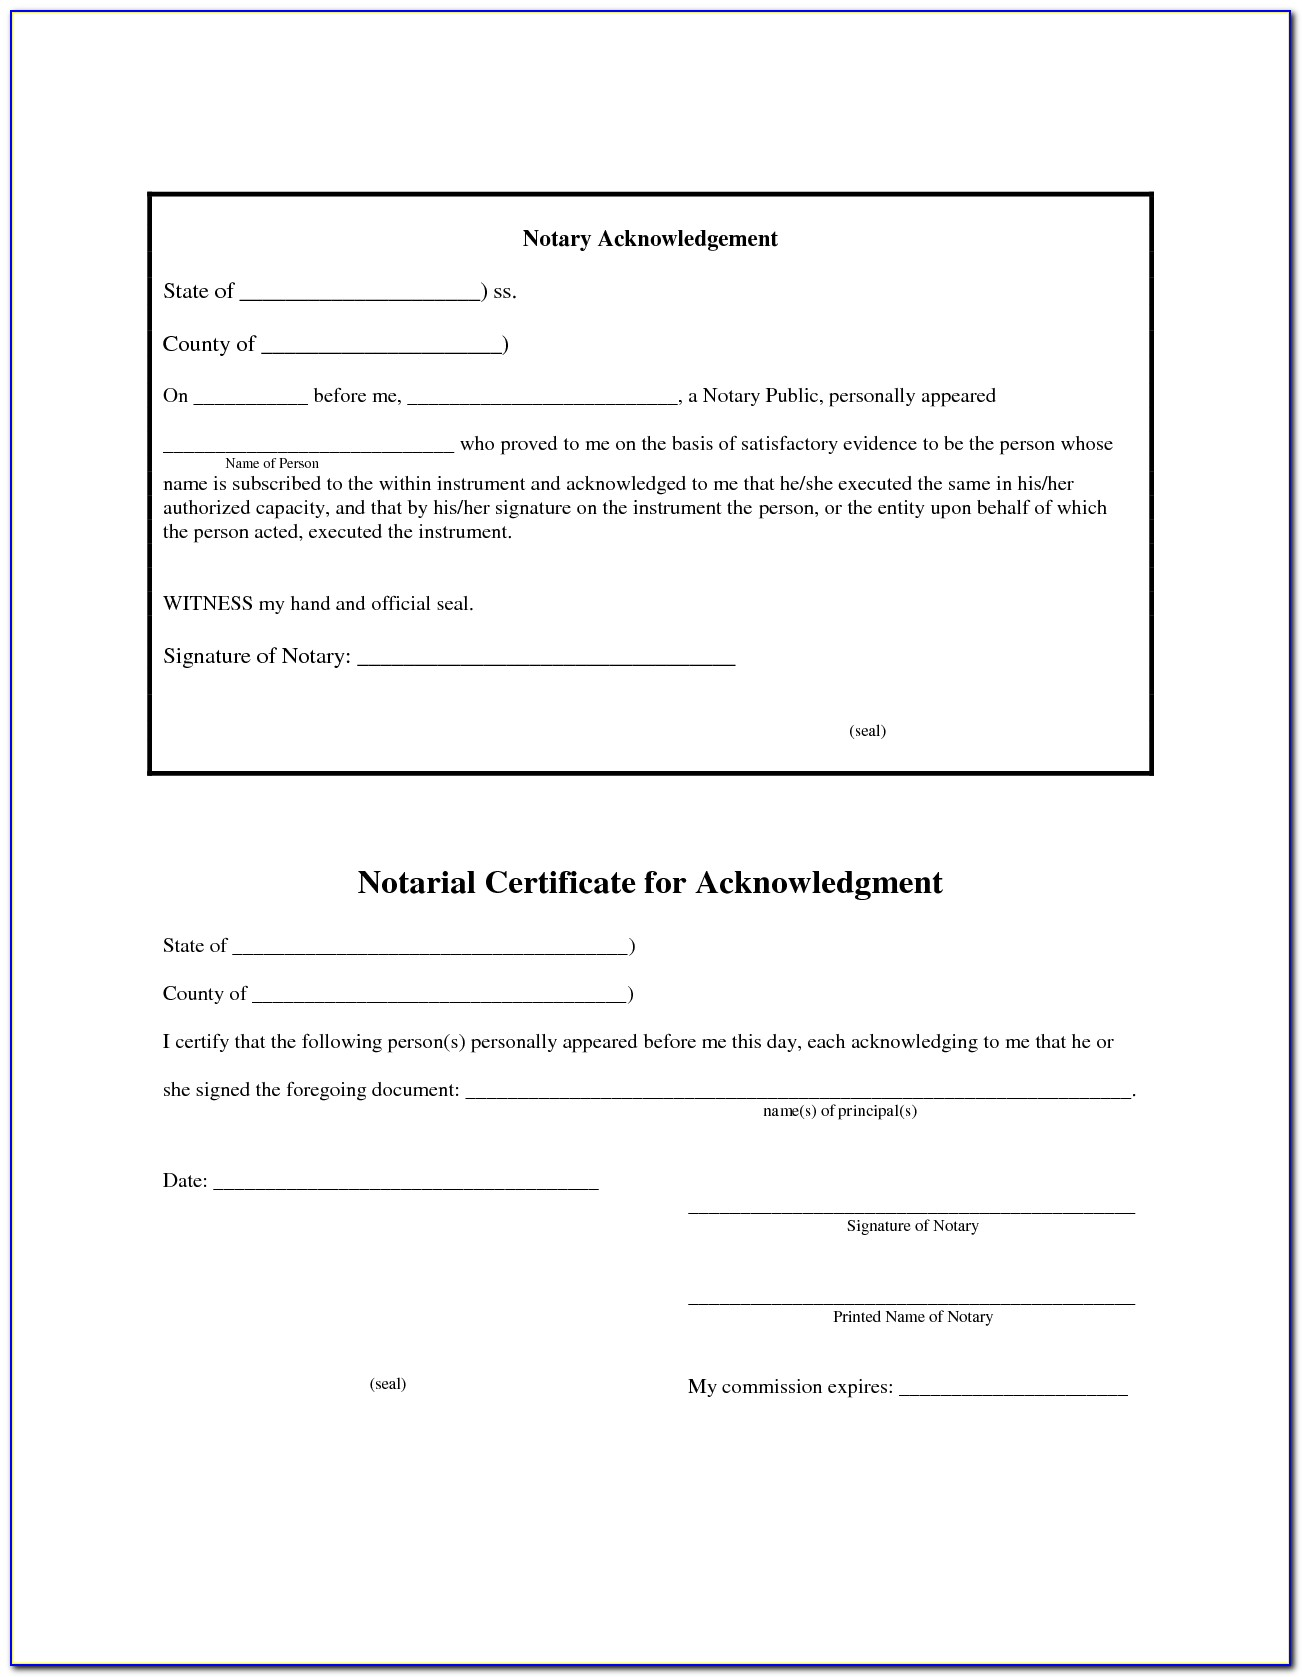 Indiana Notary Application Form